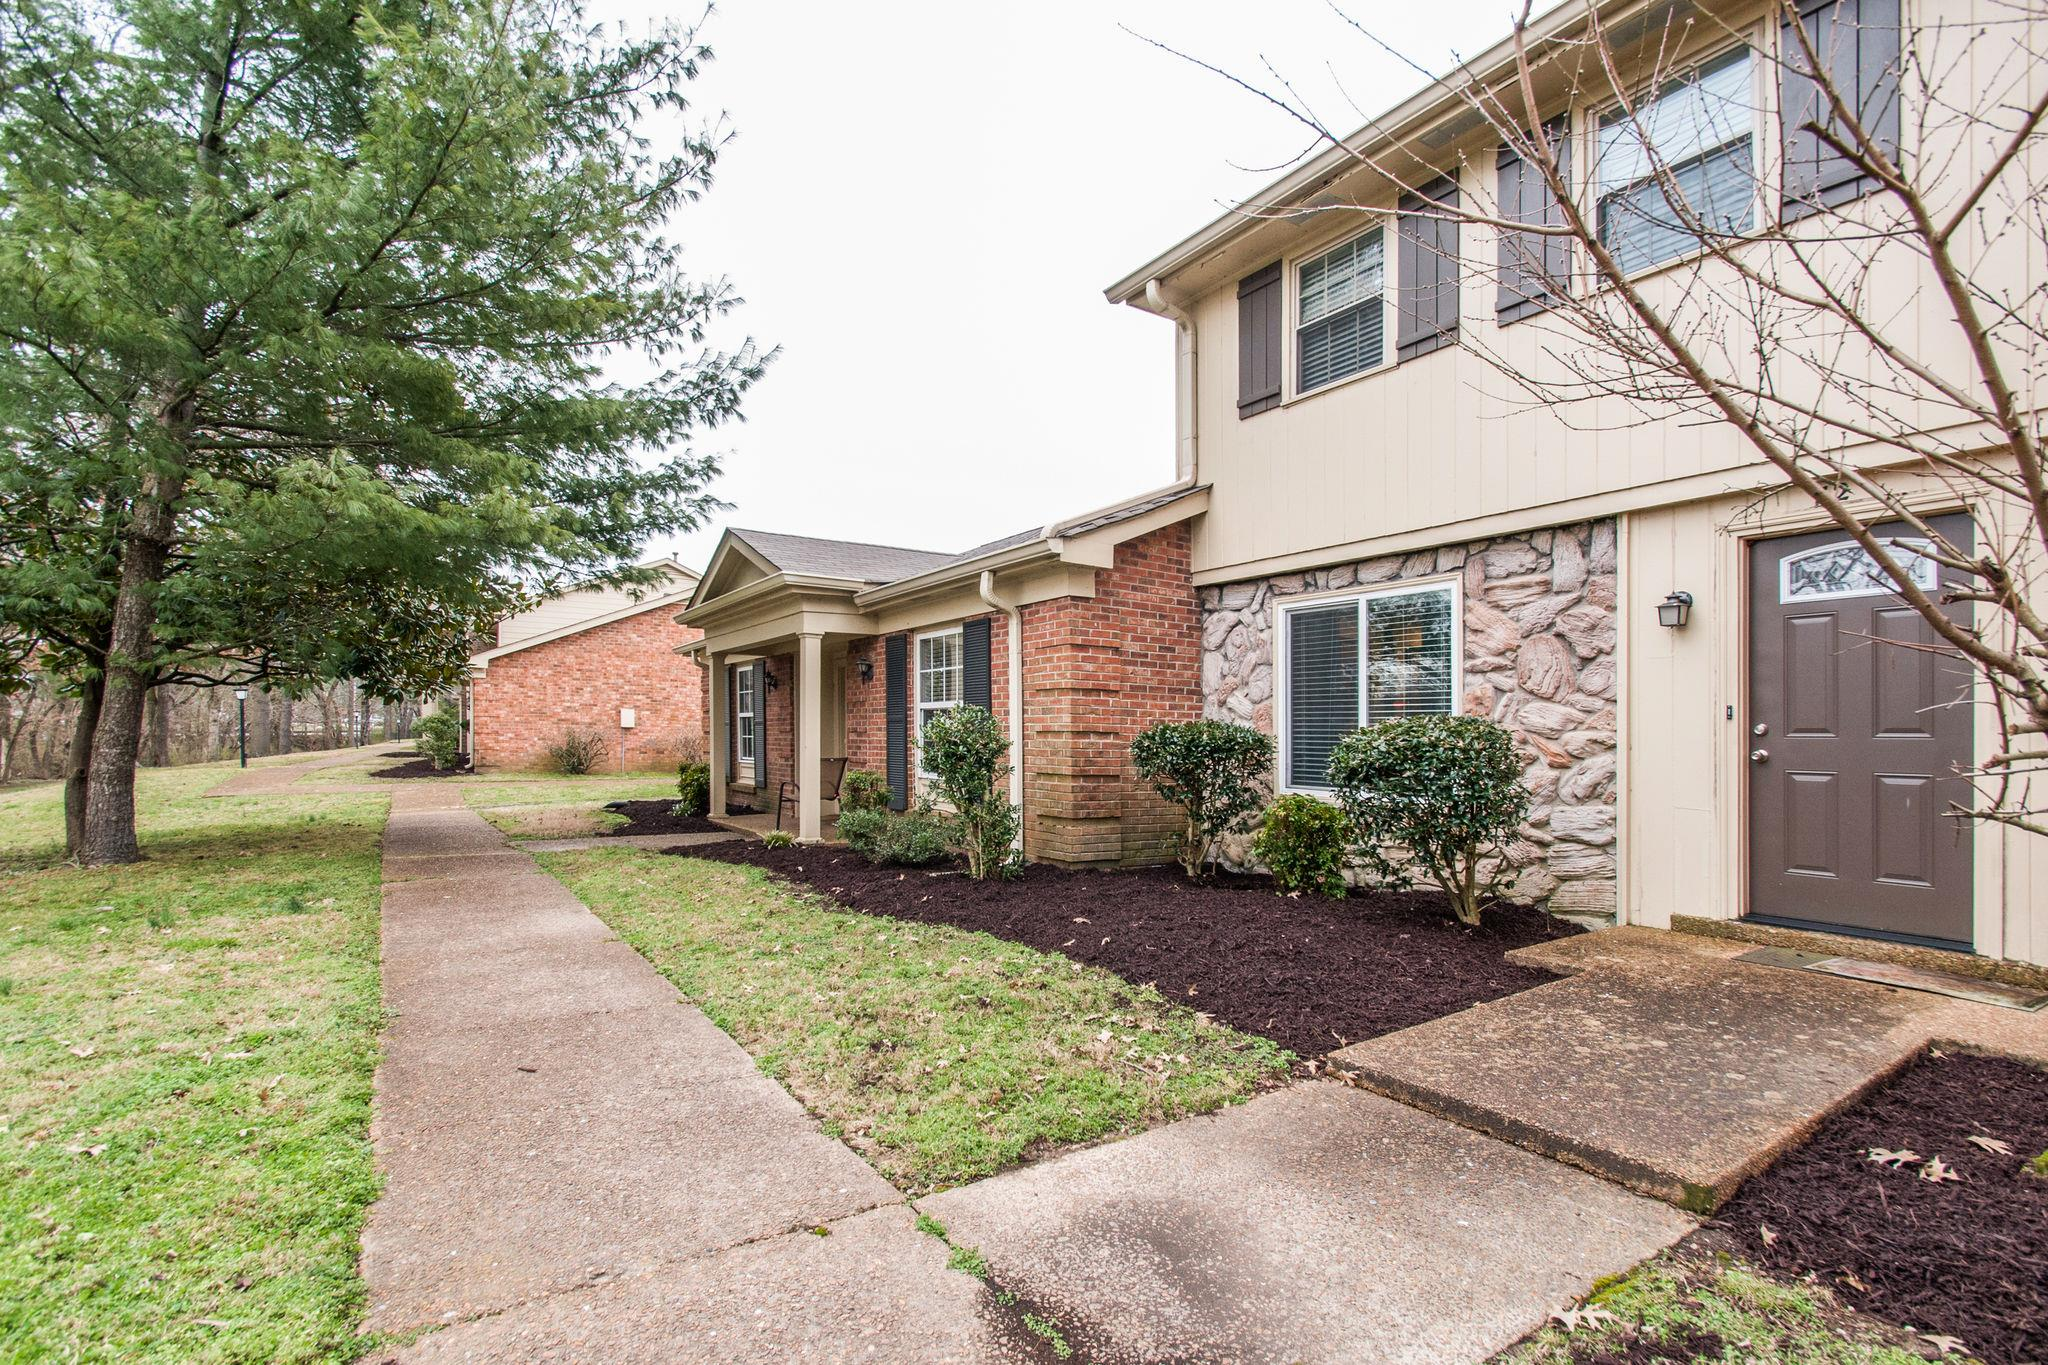 8207 Sawyer Brown Rd Apt F2, Bellevue in Davidson County County, TN 37221 Home for Sale